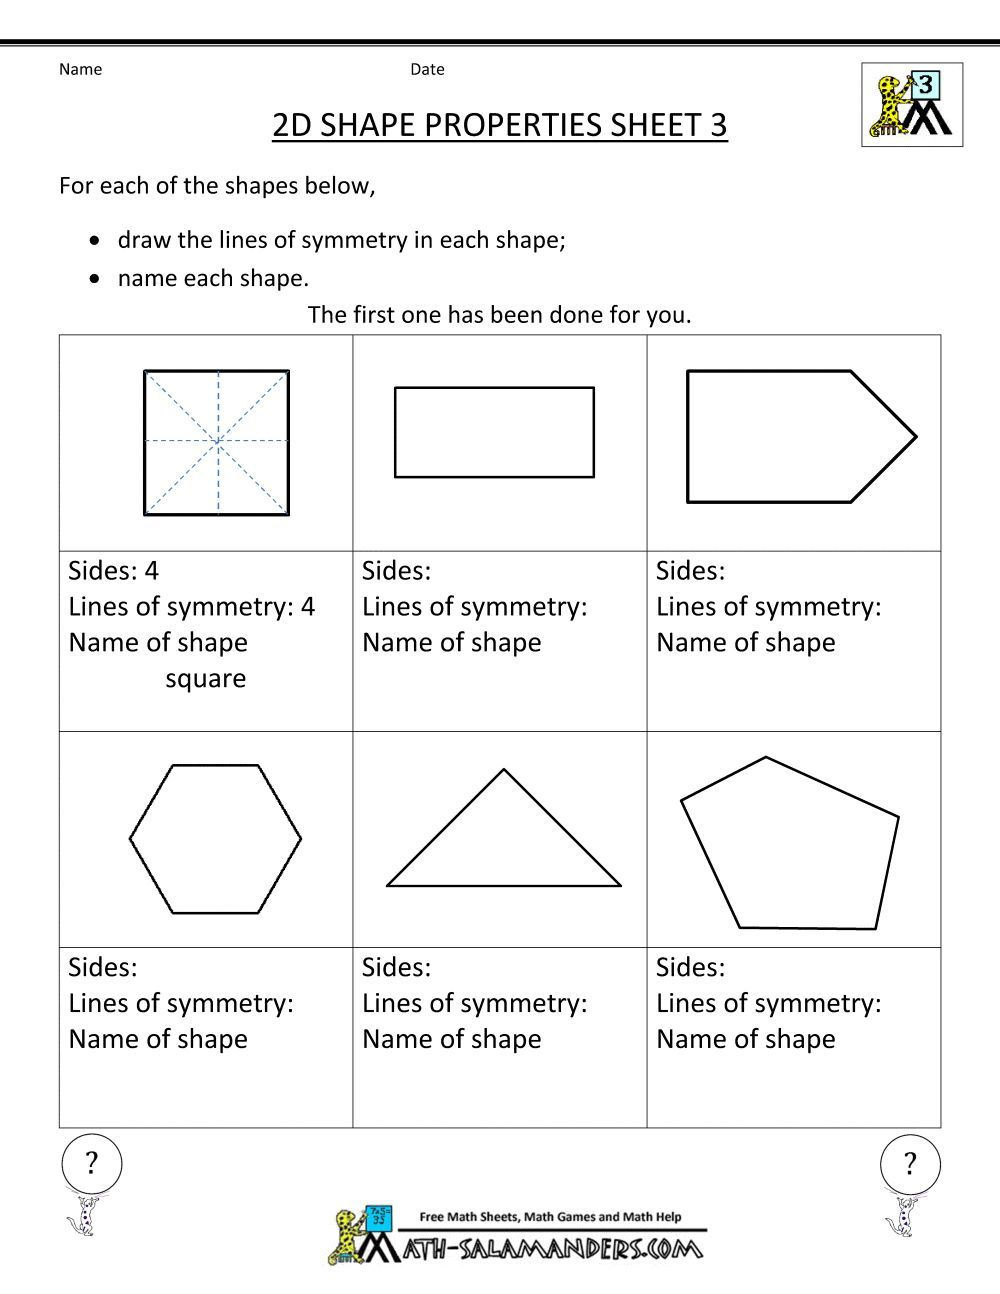 hight resolution of 18 Best Basic Geometry Worksheets images on Best Worksheets Collection